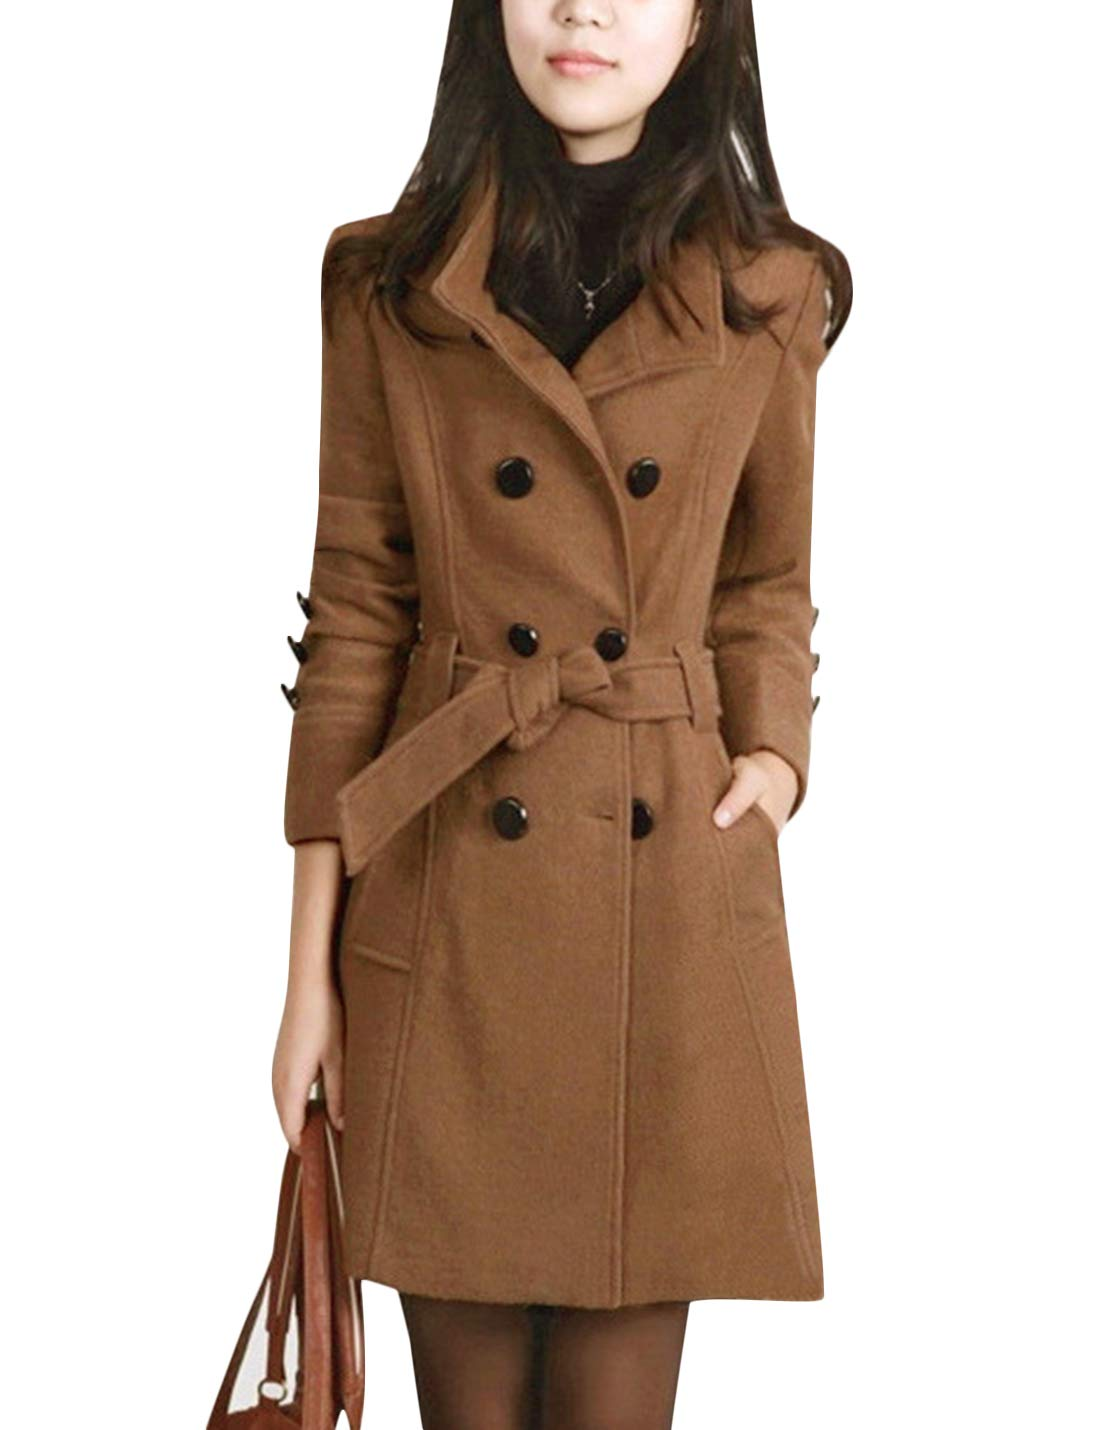 Tanming Womens Winter Casual Lapel Wool Blend Double Breasted Pea Coat Trench Coat (Camel, Small) by Tanming